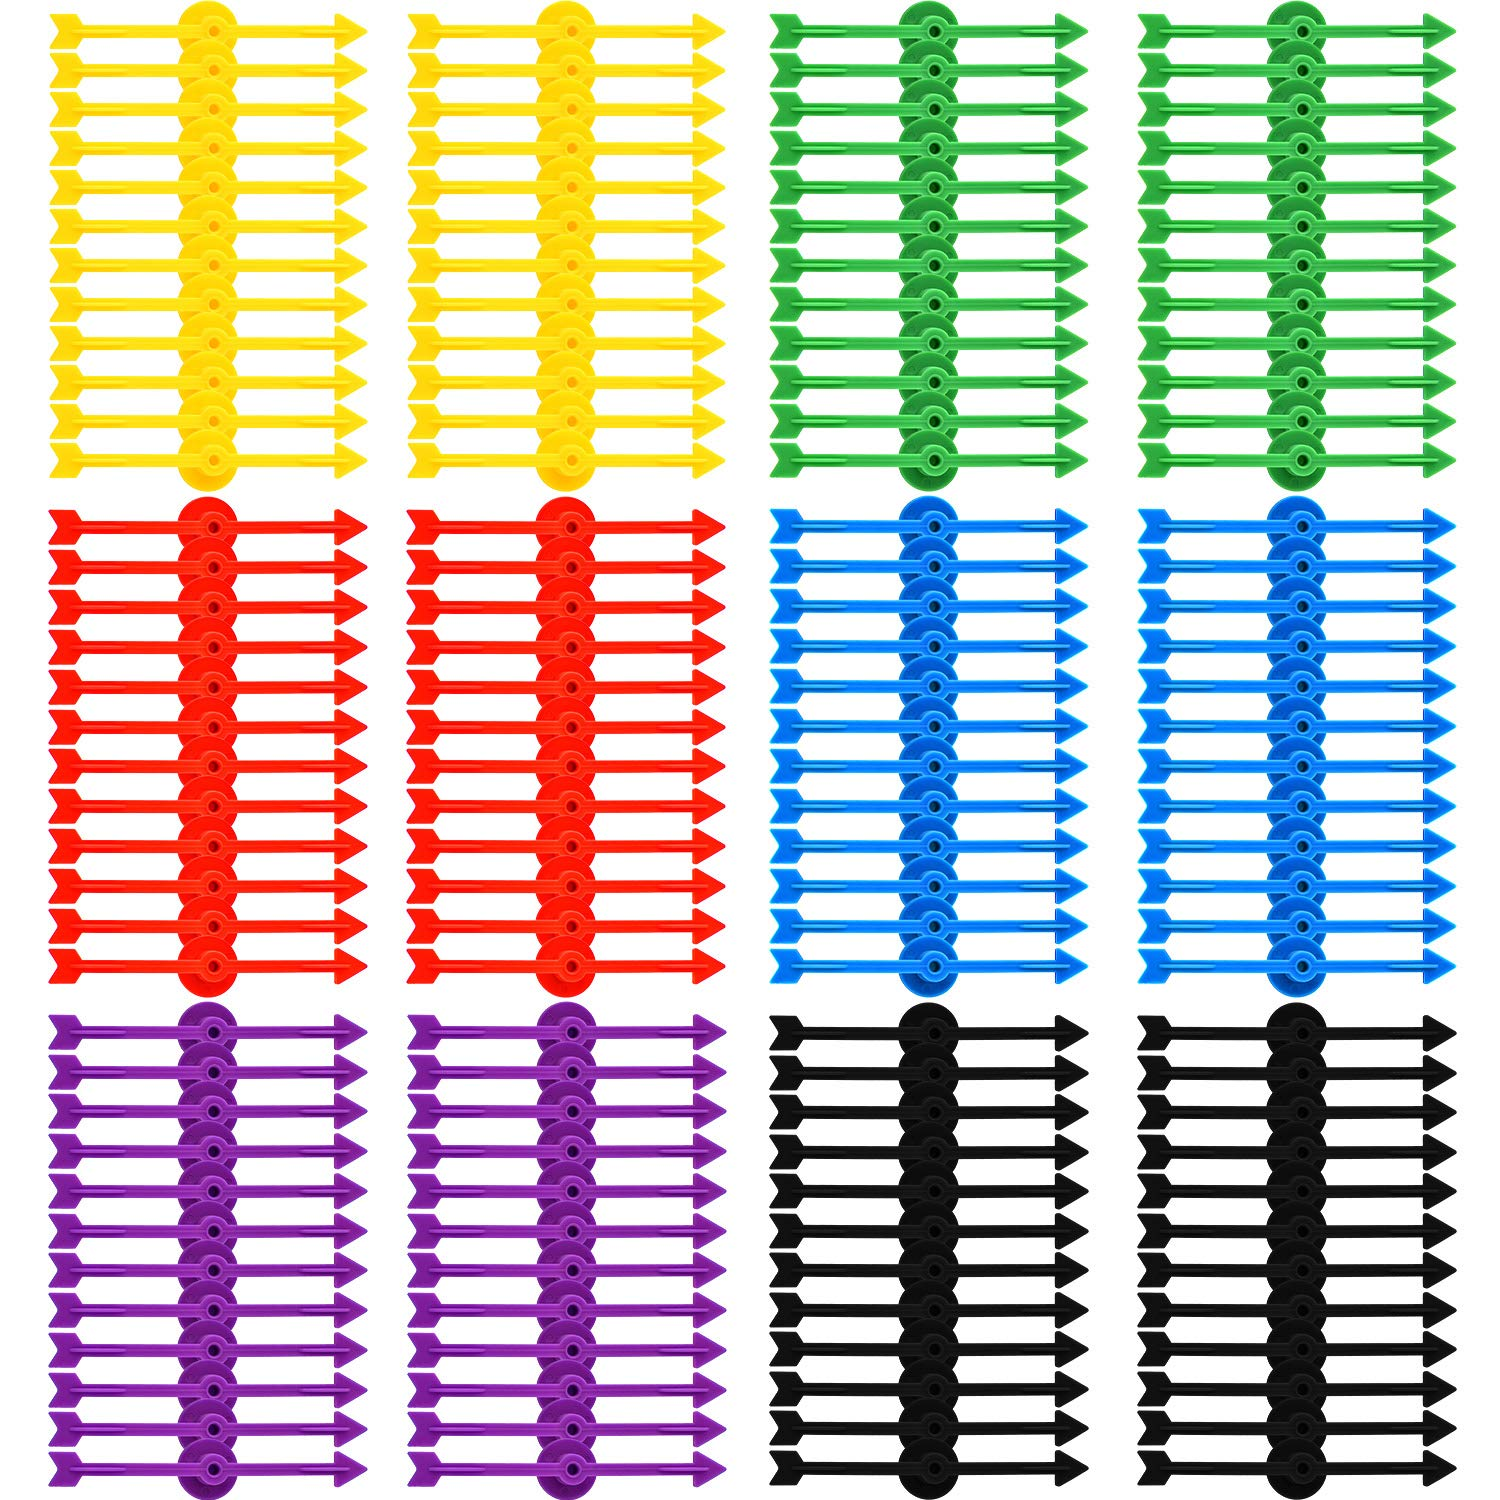 Tatuo 120 Pieces 4 Inch Arrow Spinners Board Game Spinner Plastic Arrow Game Spinners for School Party Supplies, 6 Colors by Tatuo